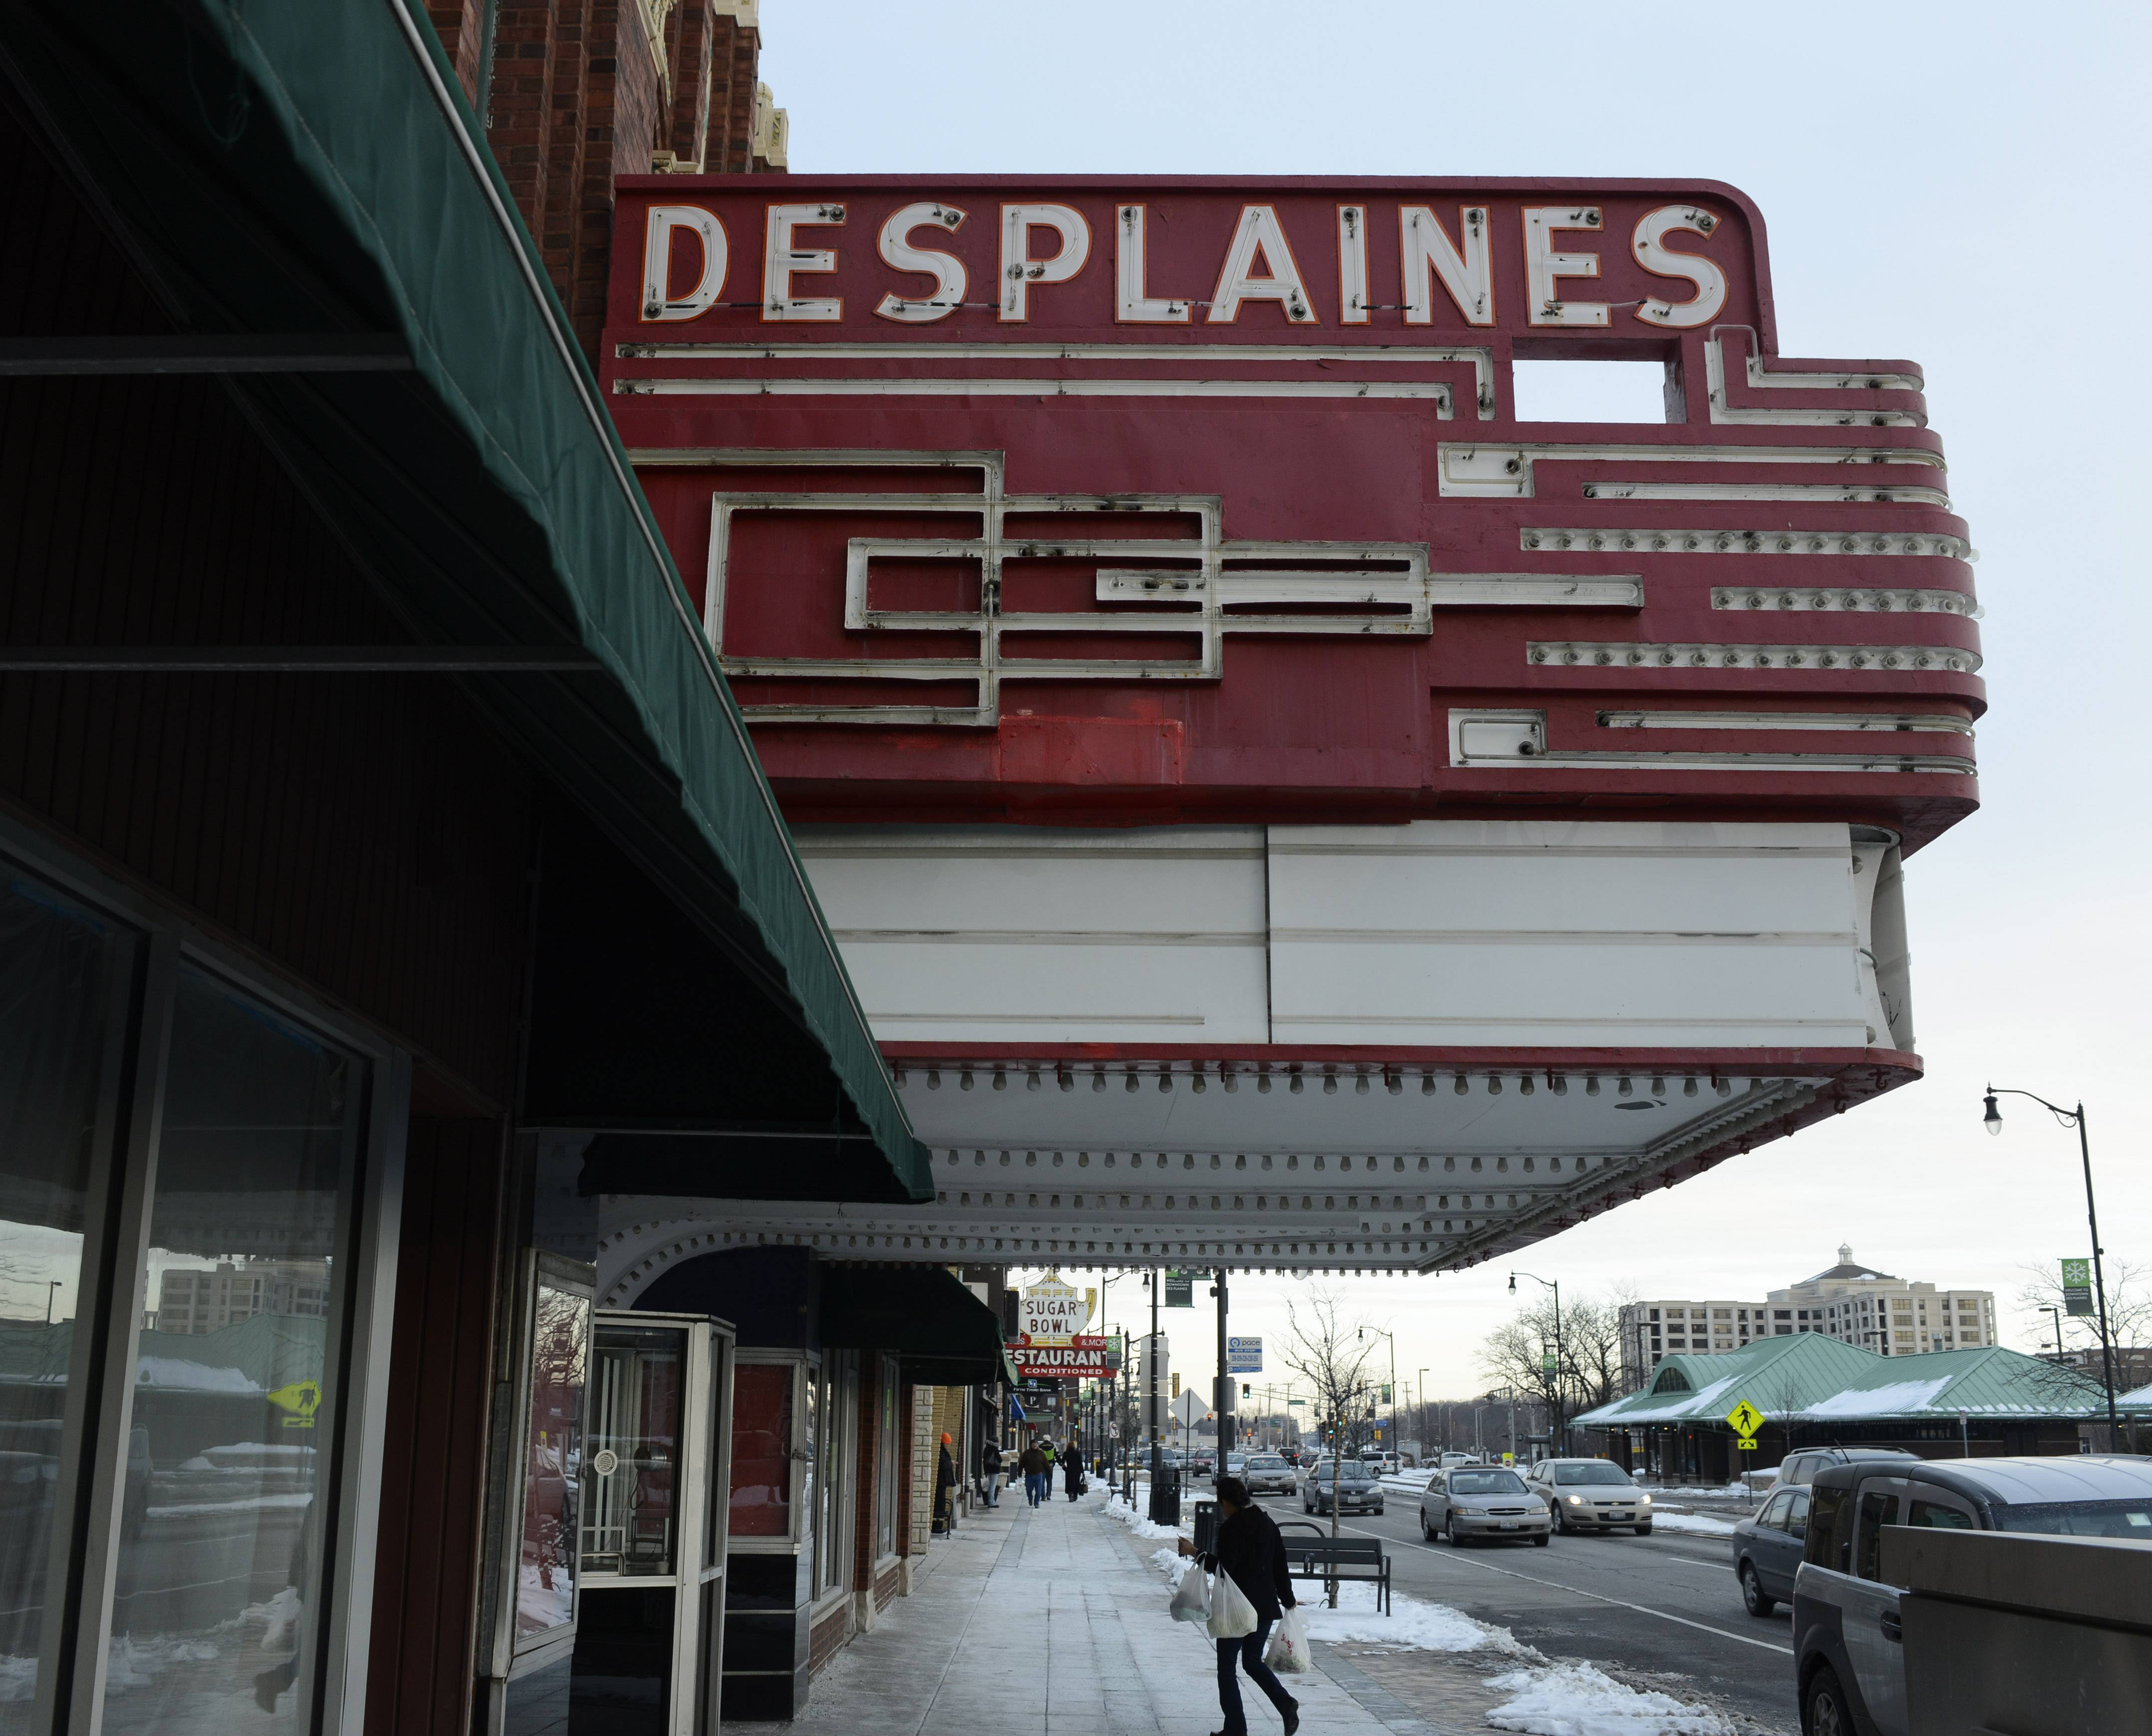 This is the exterior of the Des Plaines Theatre, which is currently closed. The owner is working to resolve code violations and hopes to reopen soon.